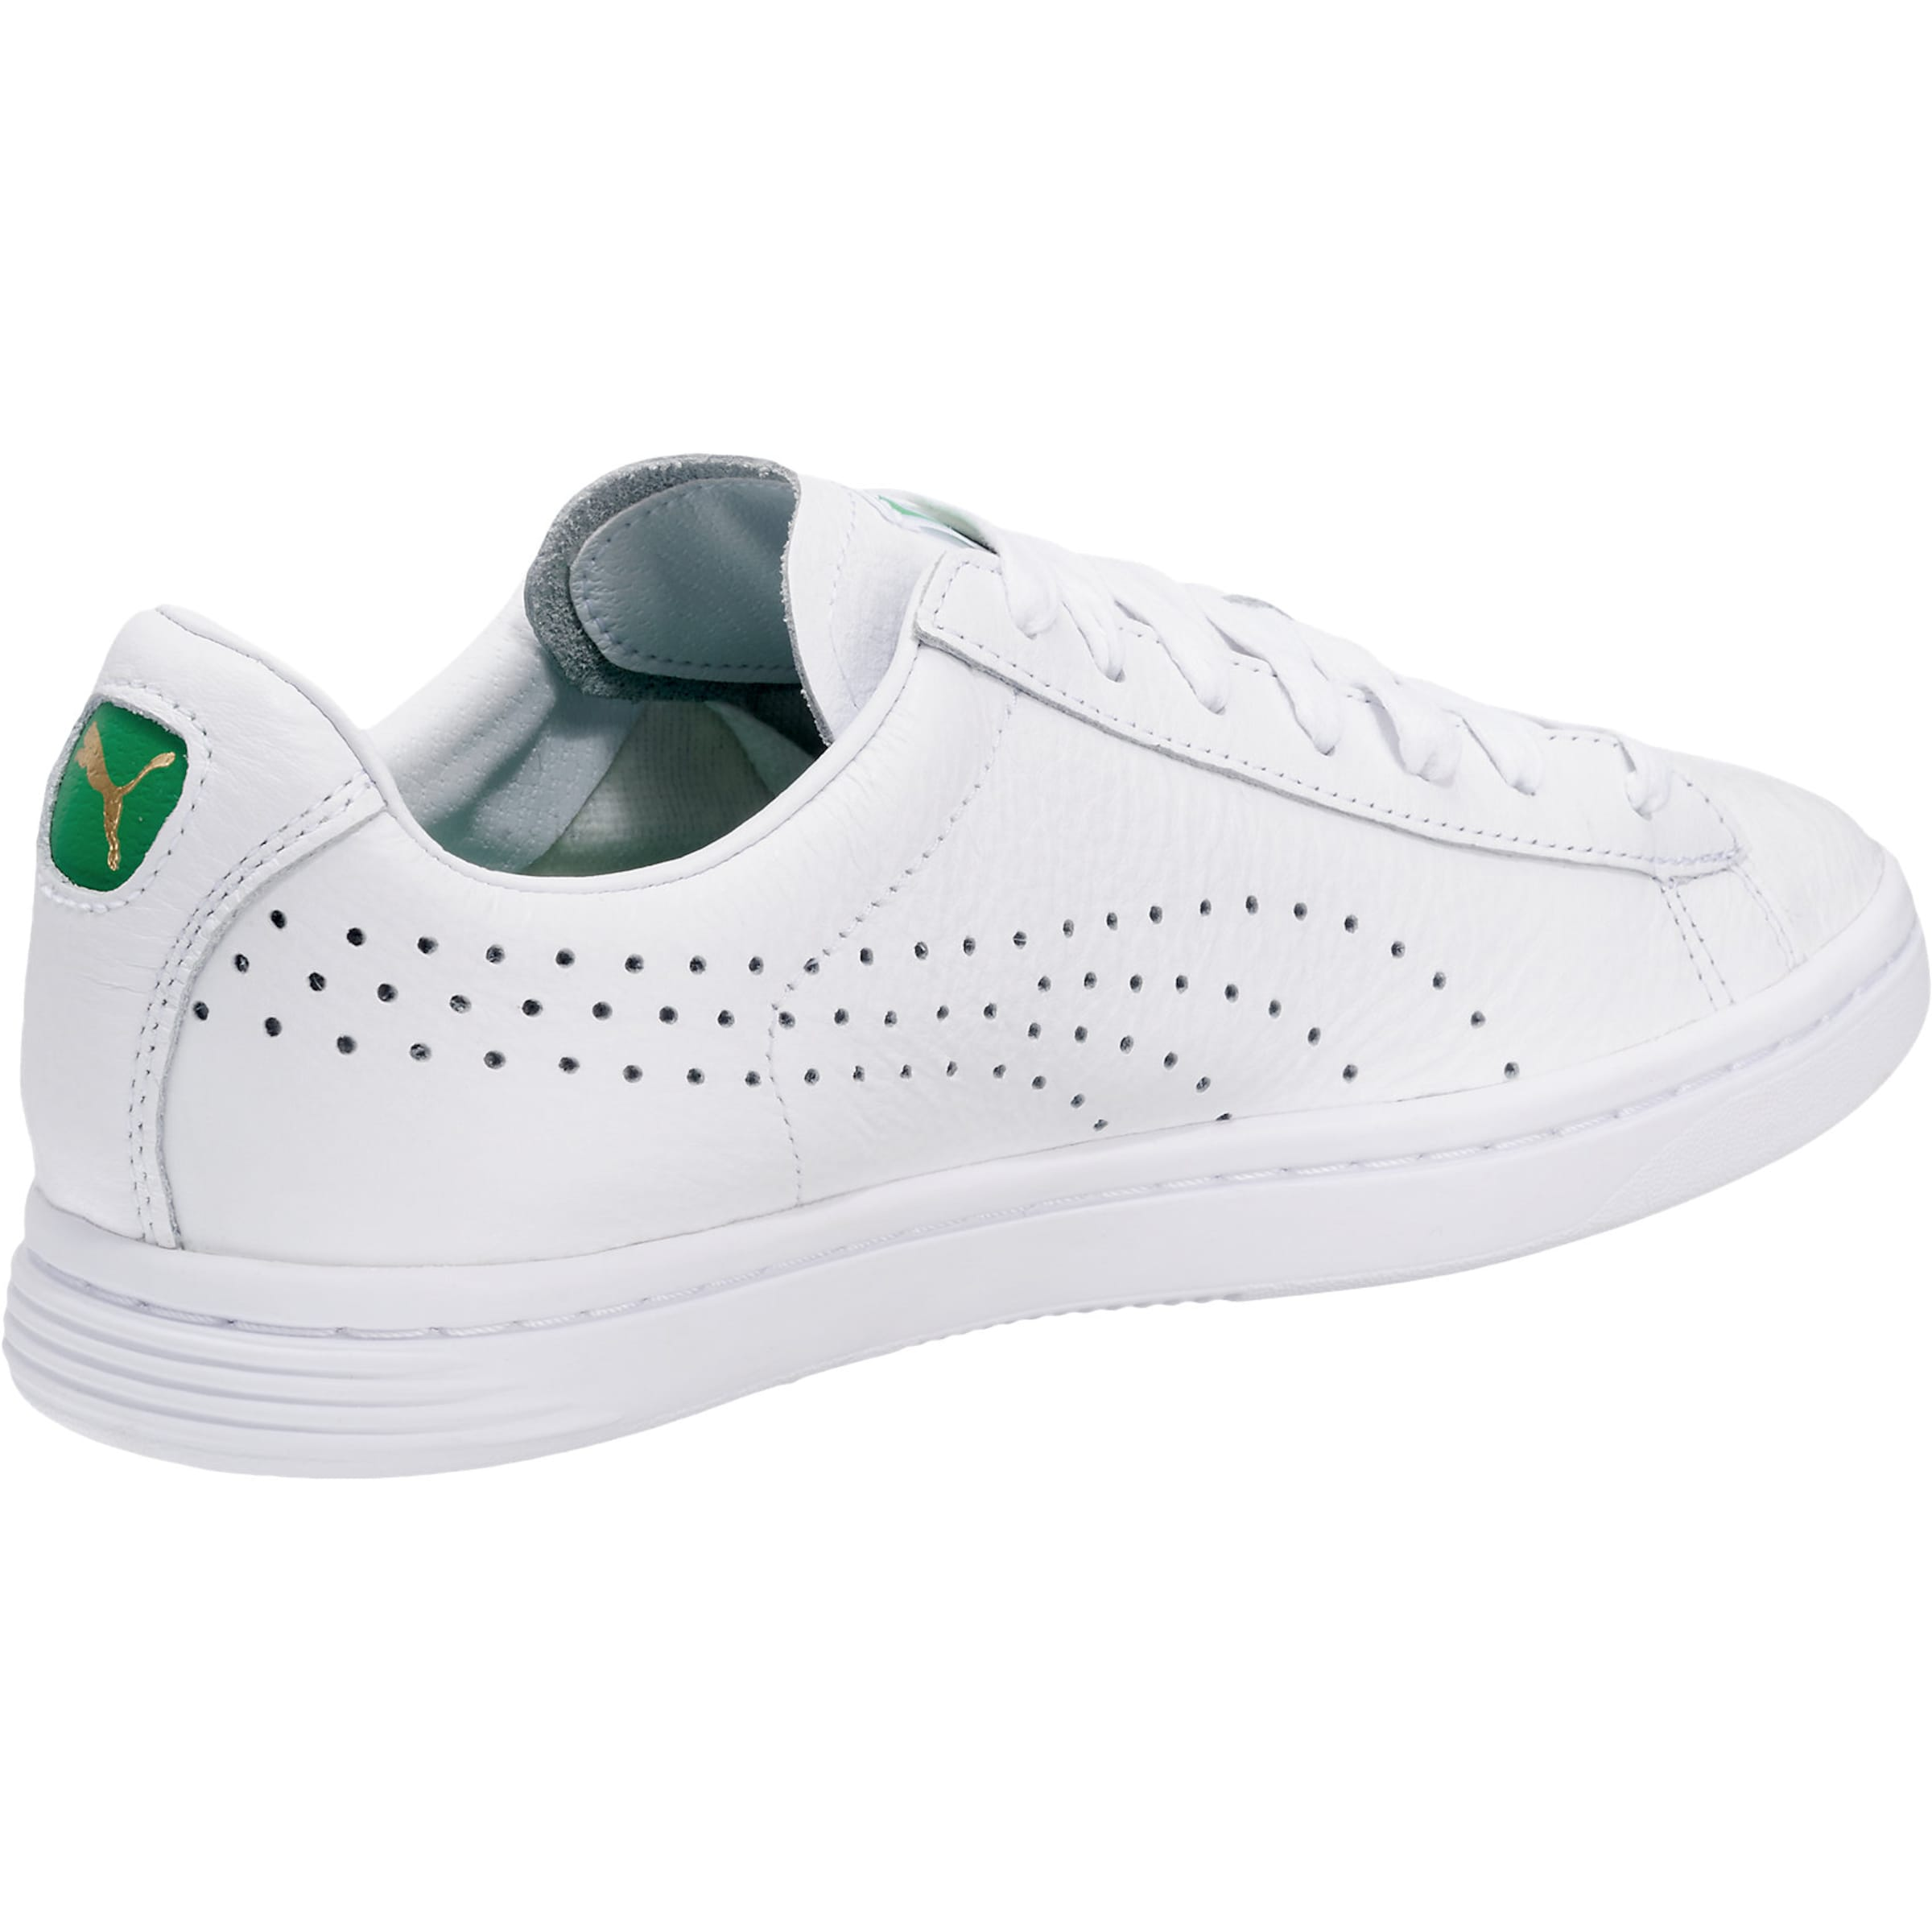 Star VertBlanc Basses Puma Nm' En Baskets 'court 34ARqc5jL